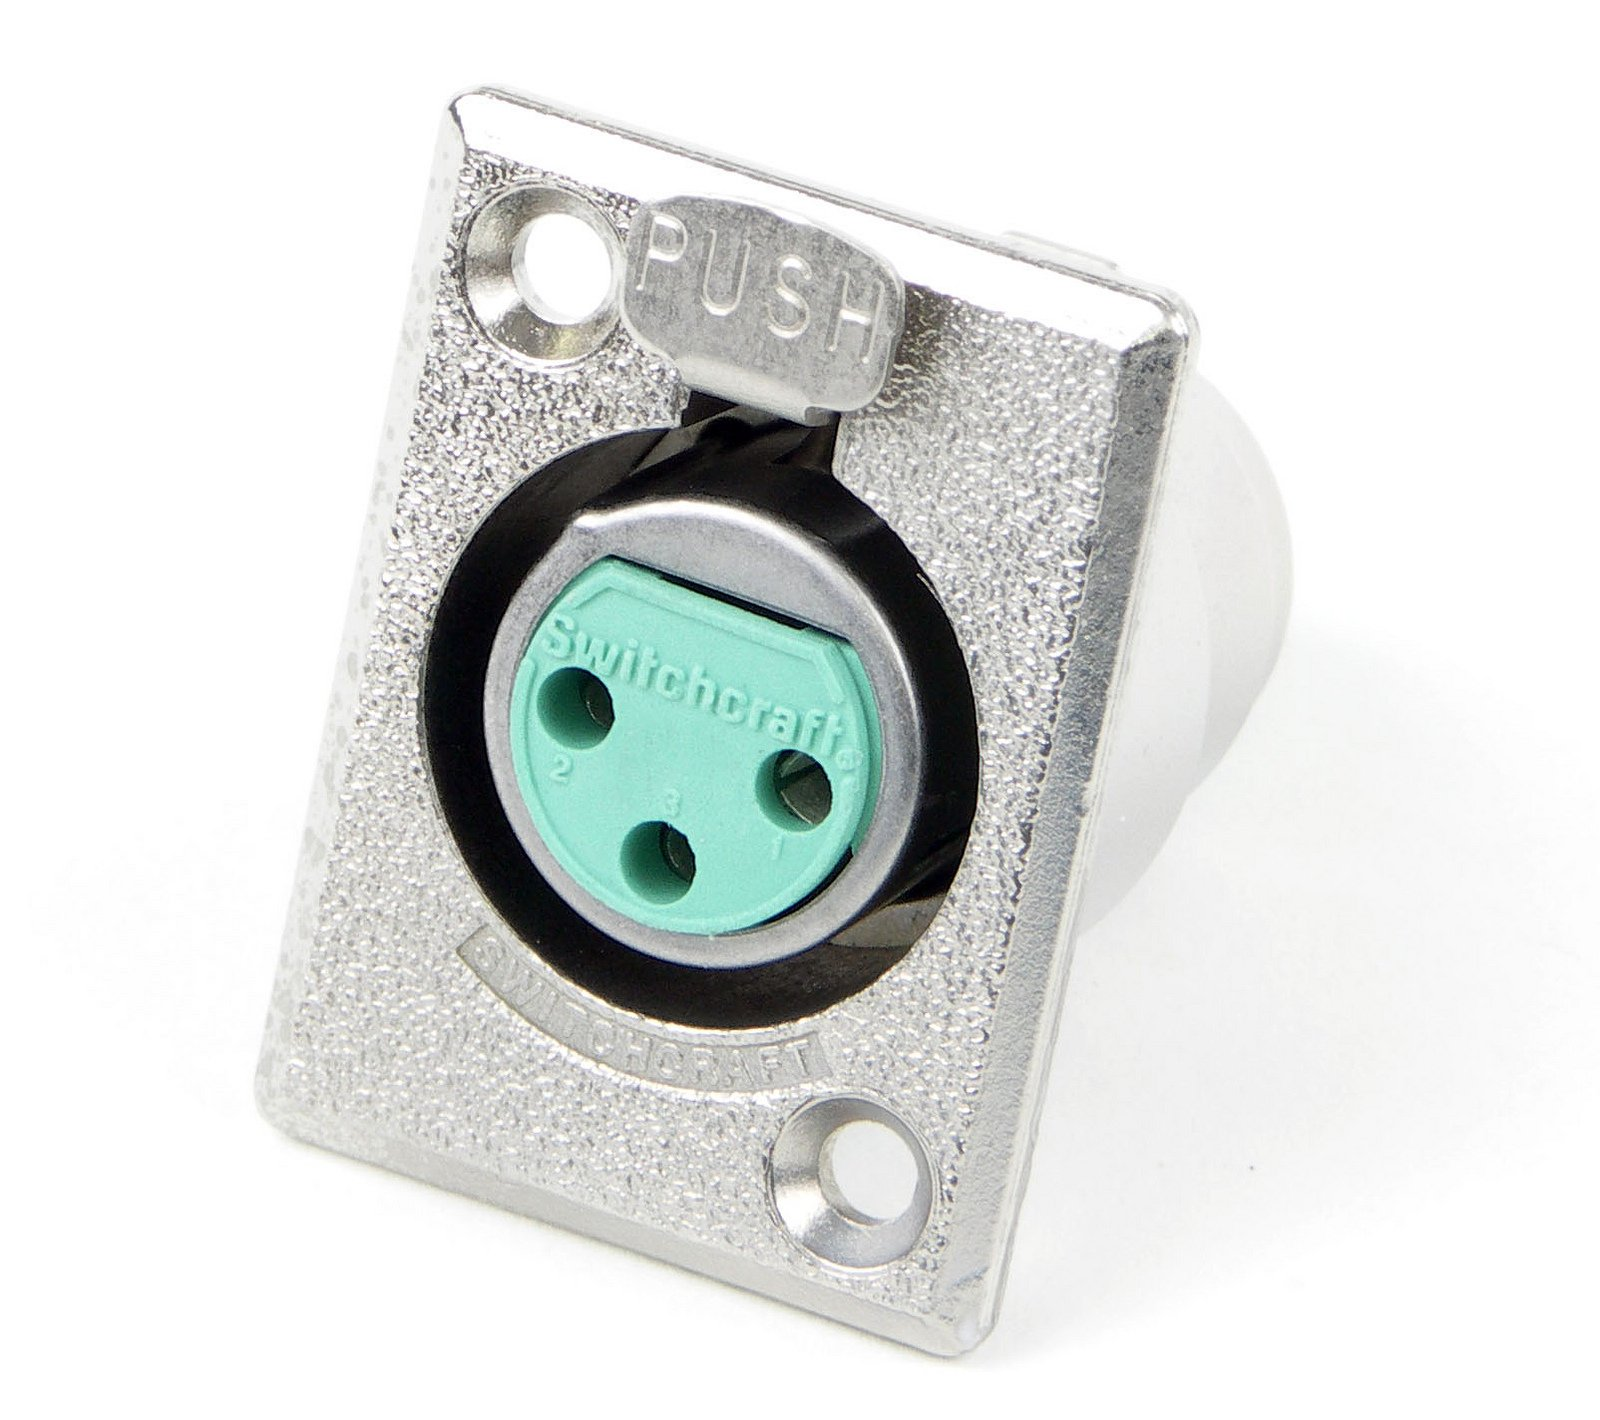 DE Series 3-Pin Panel Mount XLRF Connector with Nickel Finish